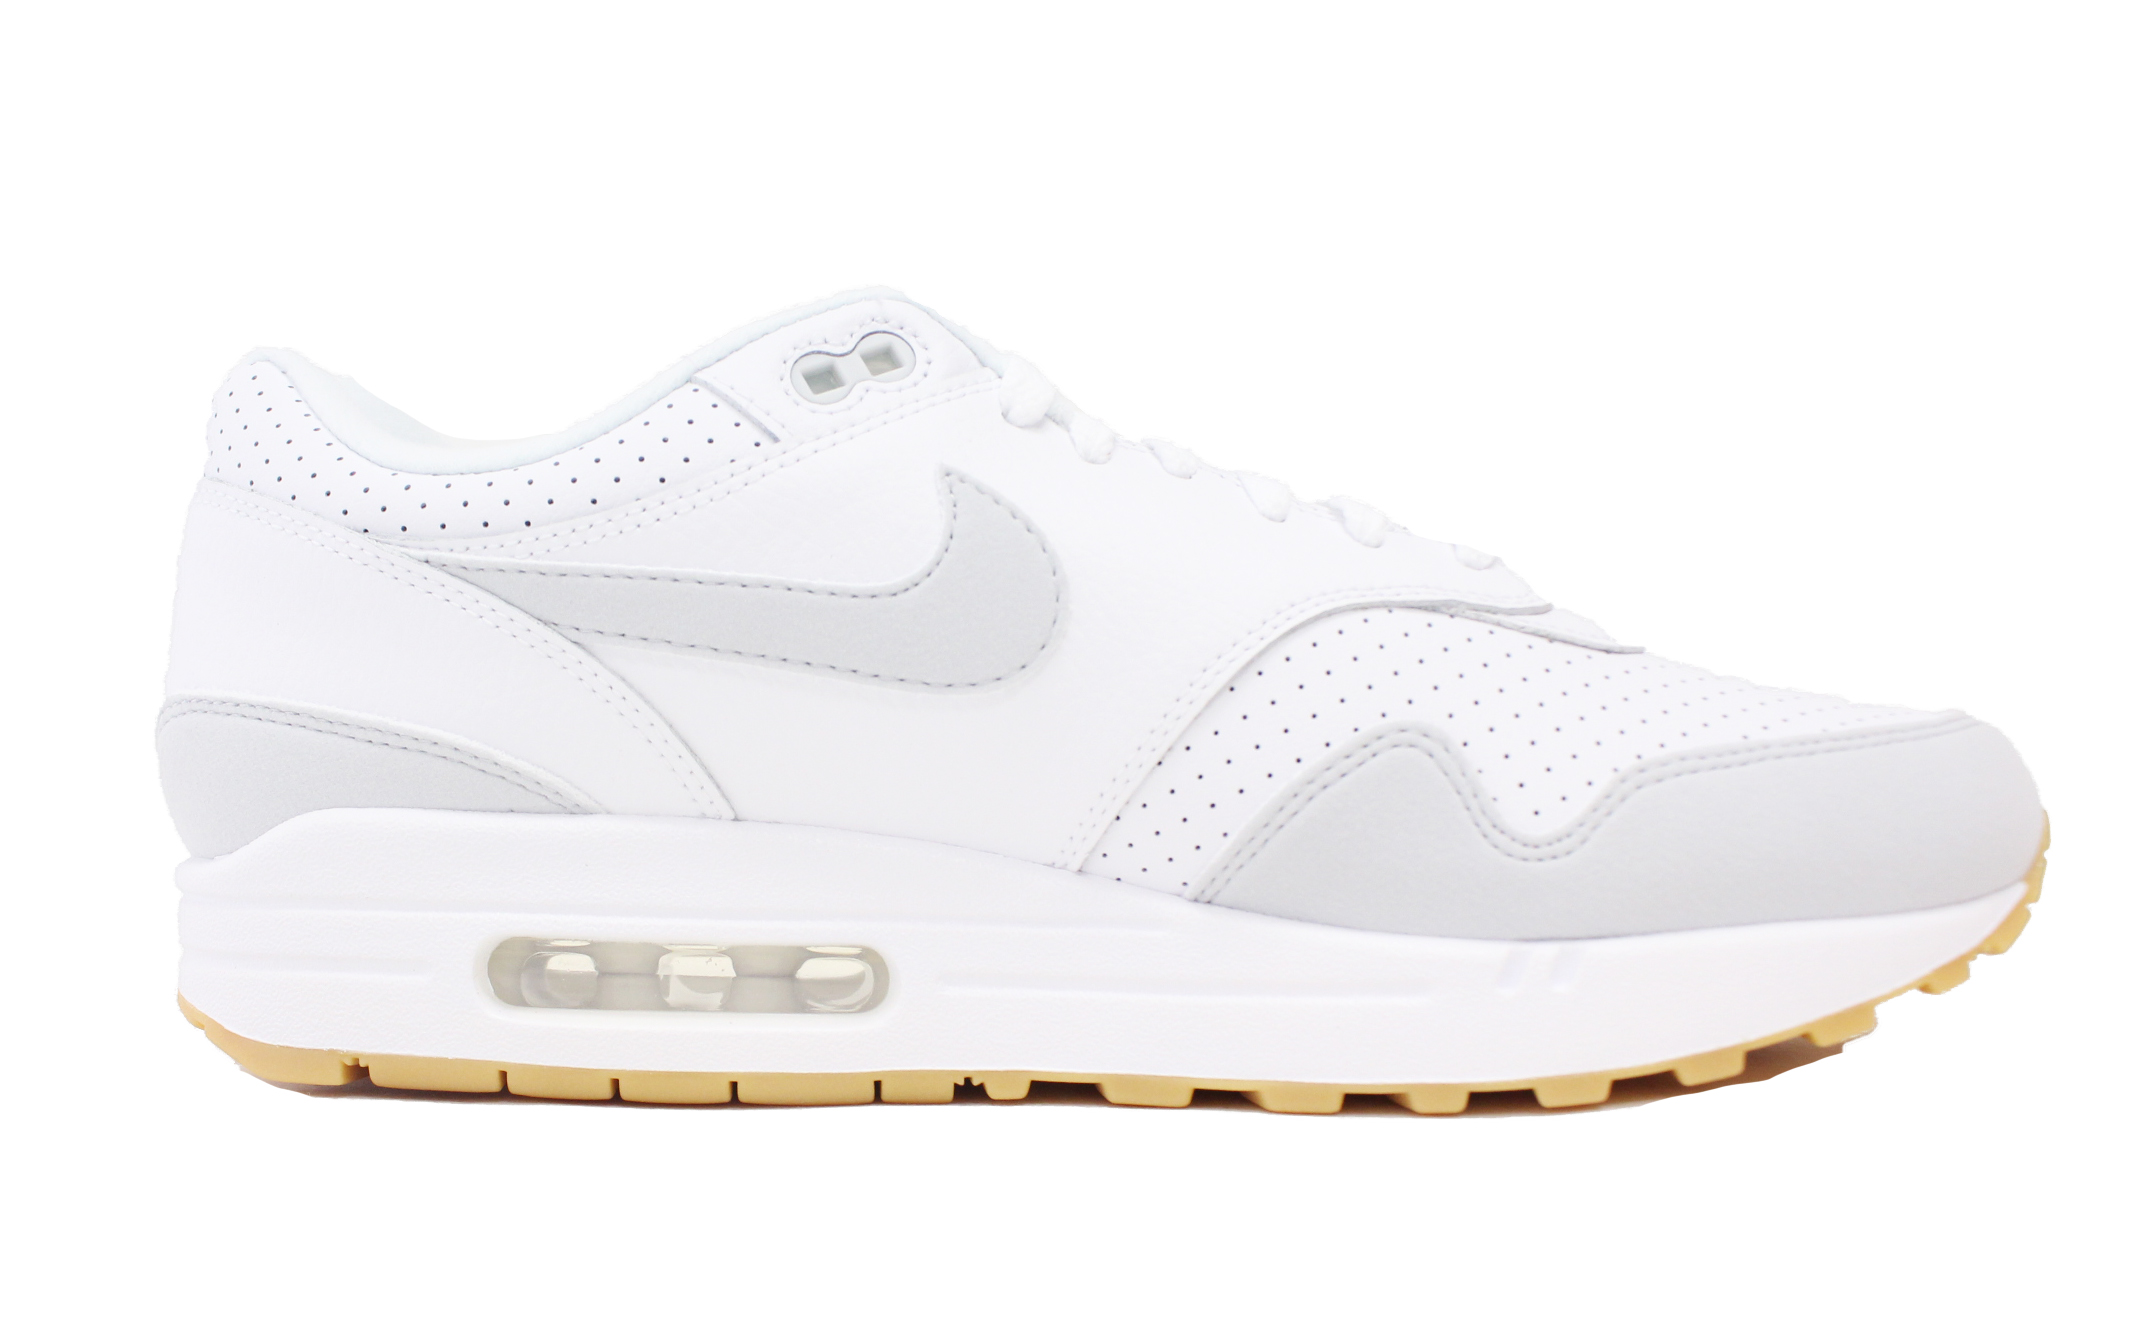 new product 3bb28 47367 Nike - NIKE AIR MAX 1 WHITE PURE PLATINUM GUM YELLOW AM1 AH8145 103 ...